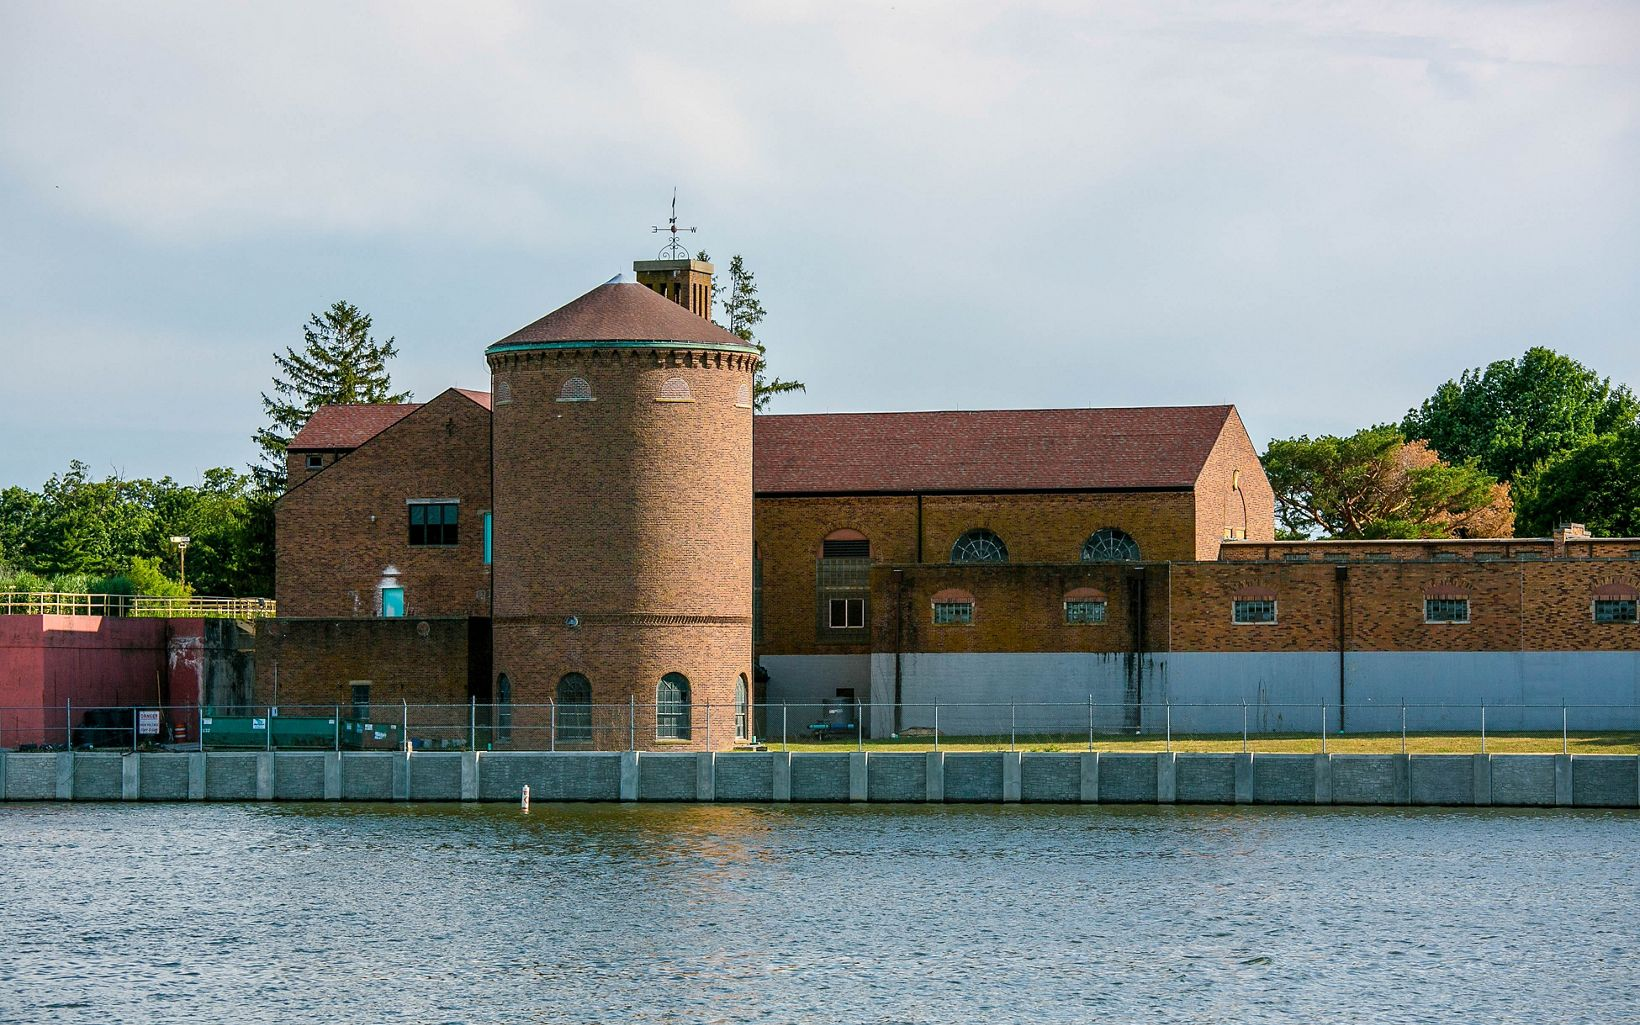 Lake Bloomington is a man-made lake used to supply water to residents of Bloomington, Illinois. Lake Bloomington was constructed in 1929 and has a Water Treatment Plant adjacent to it.